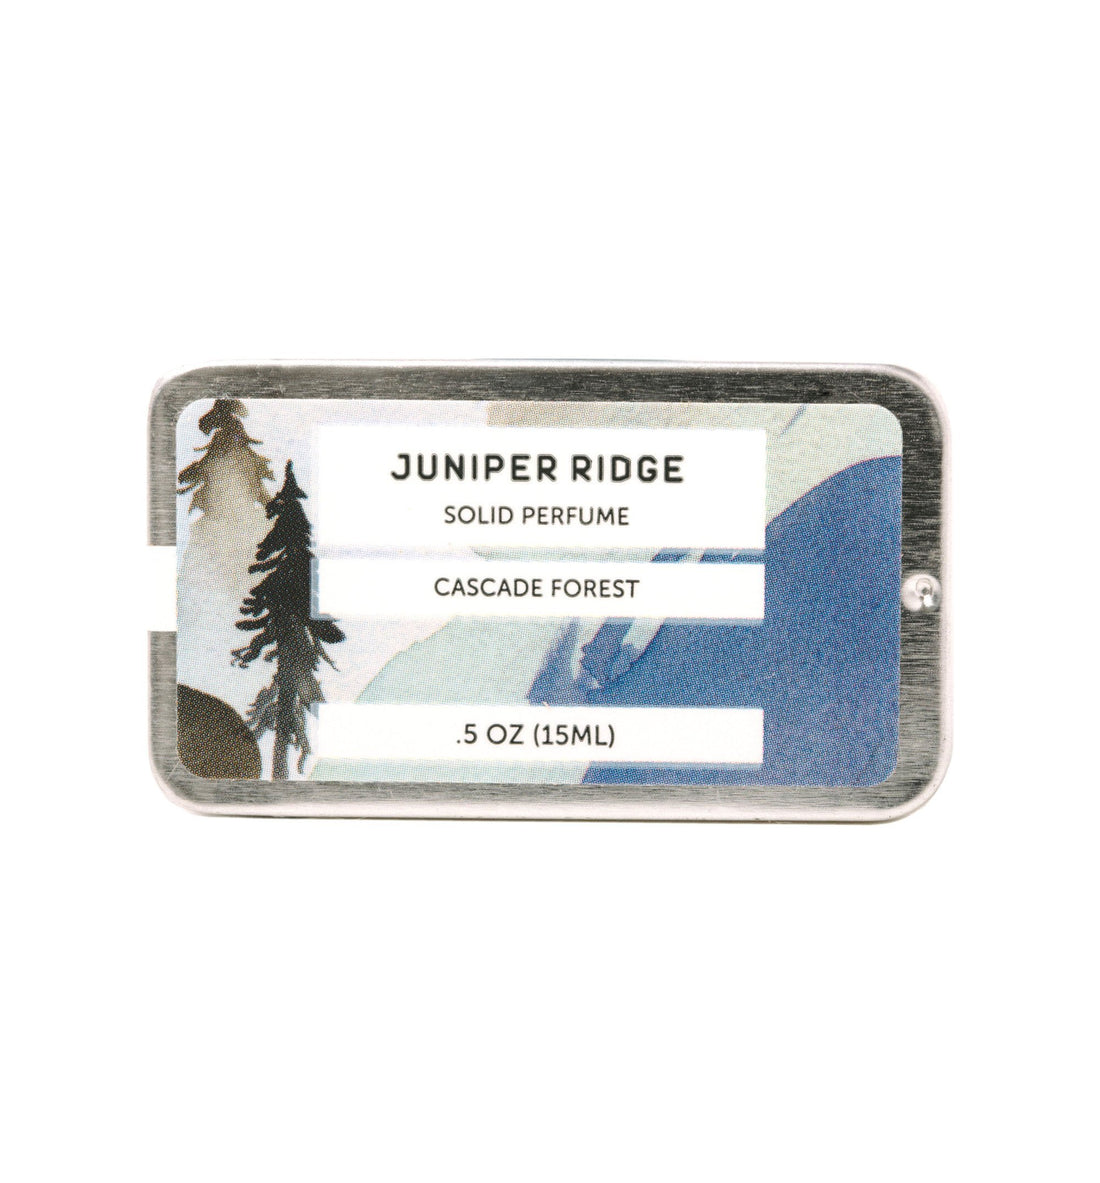 Juniper Ridge Solid Perfume - Cascade Forest - .5oz - Grooming - Iron and Resin